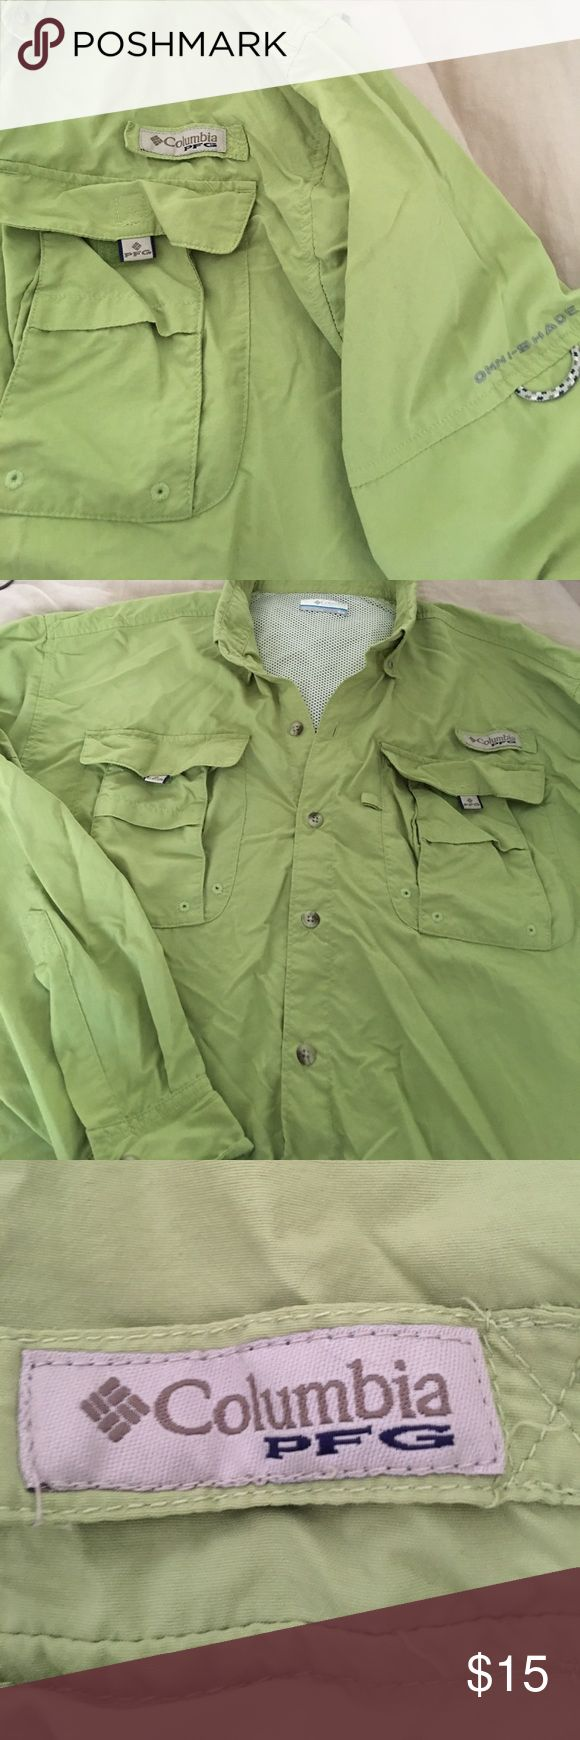 Columbia PFG shirt/jacket Lime green Columbia with Omni Shade - great for hiking or used as a cover up at lake or camping Columbia Tops